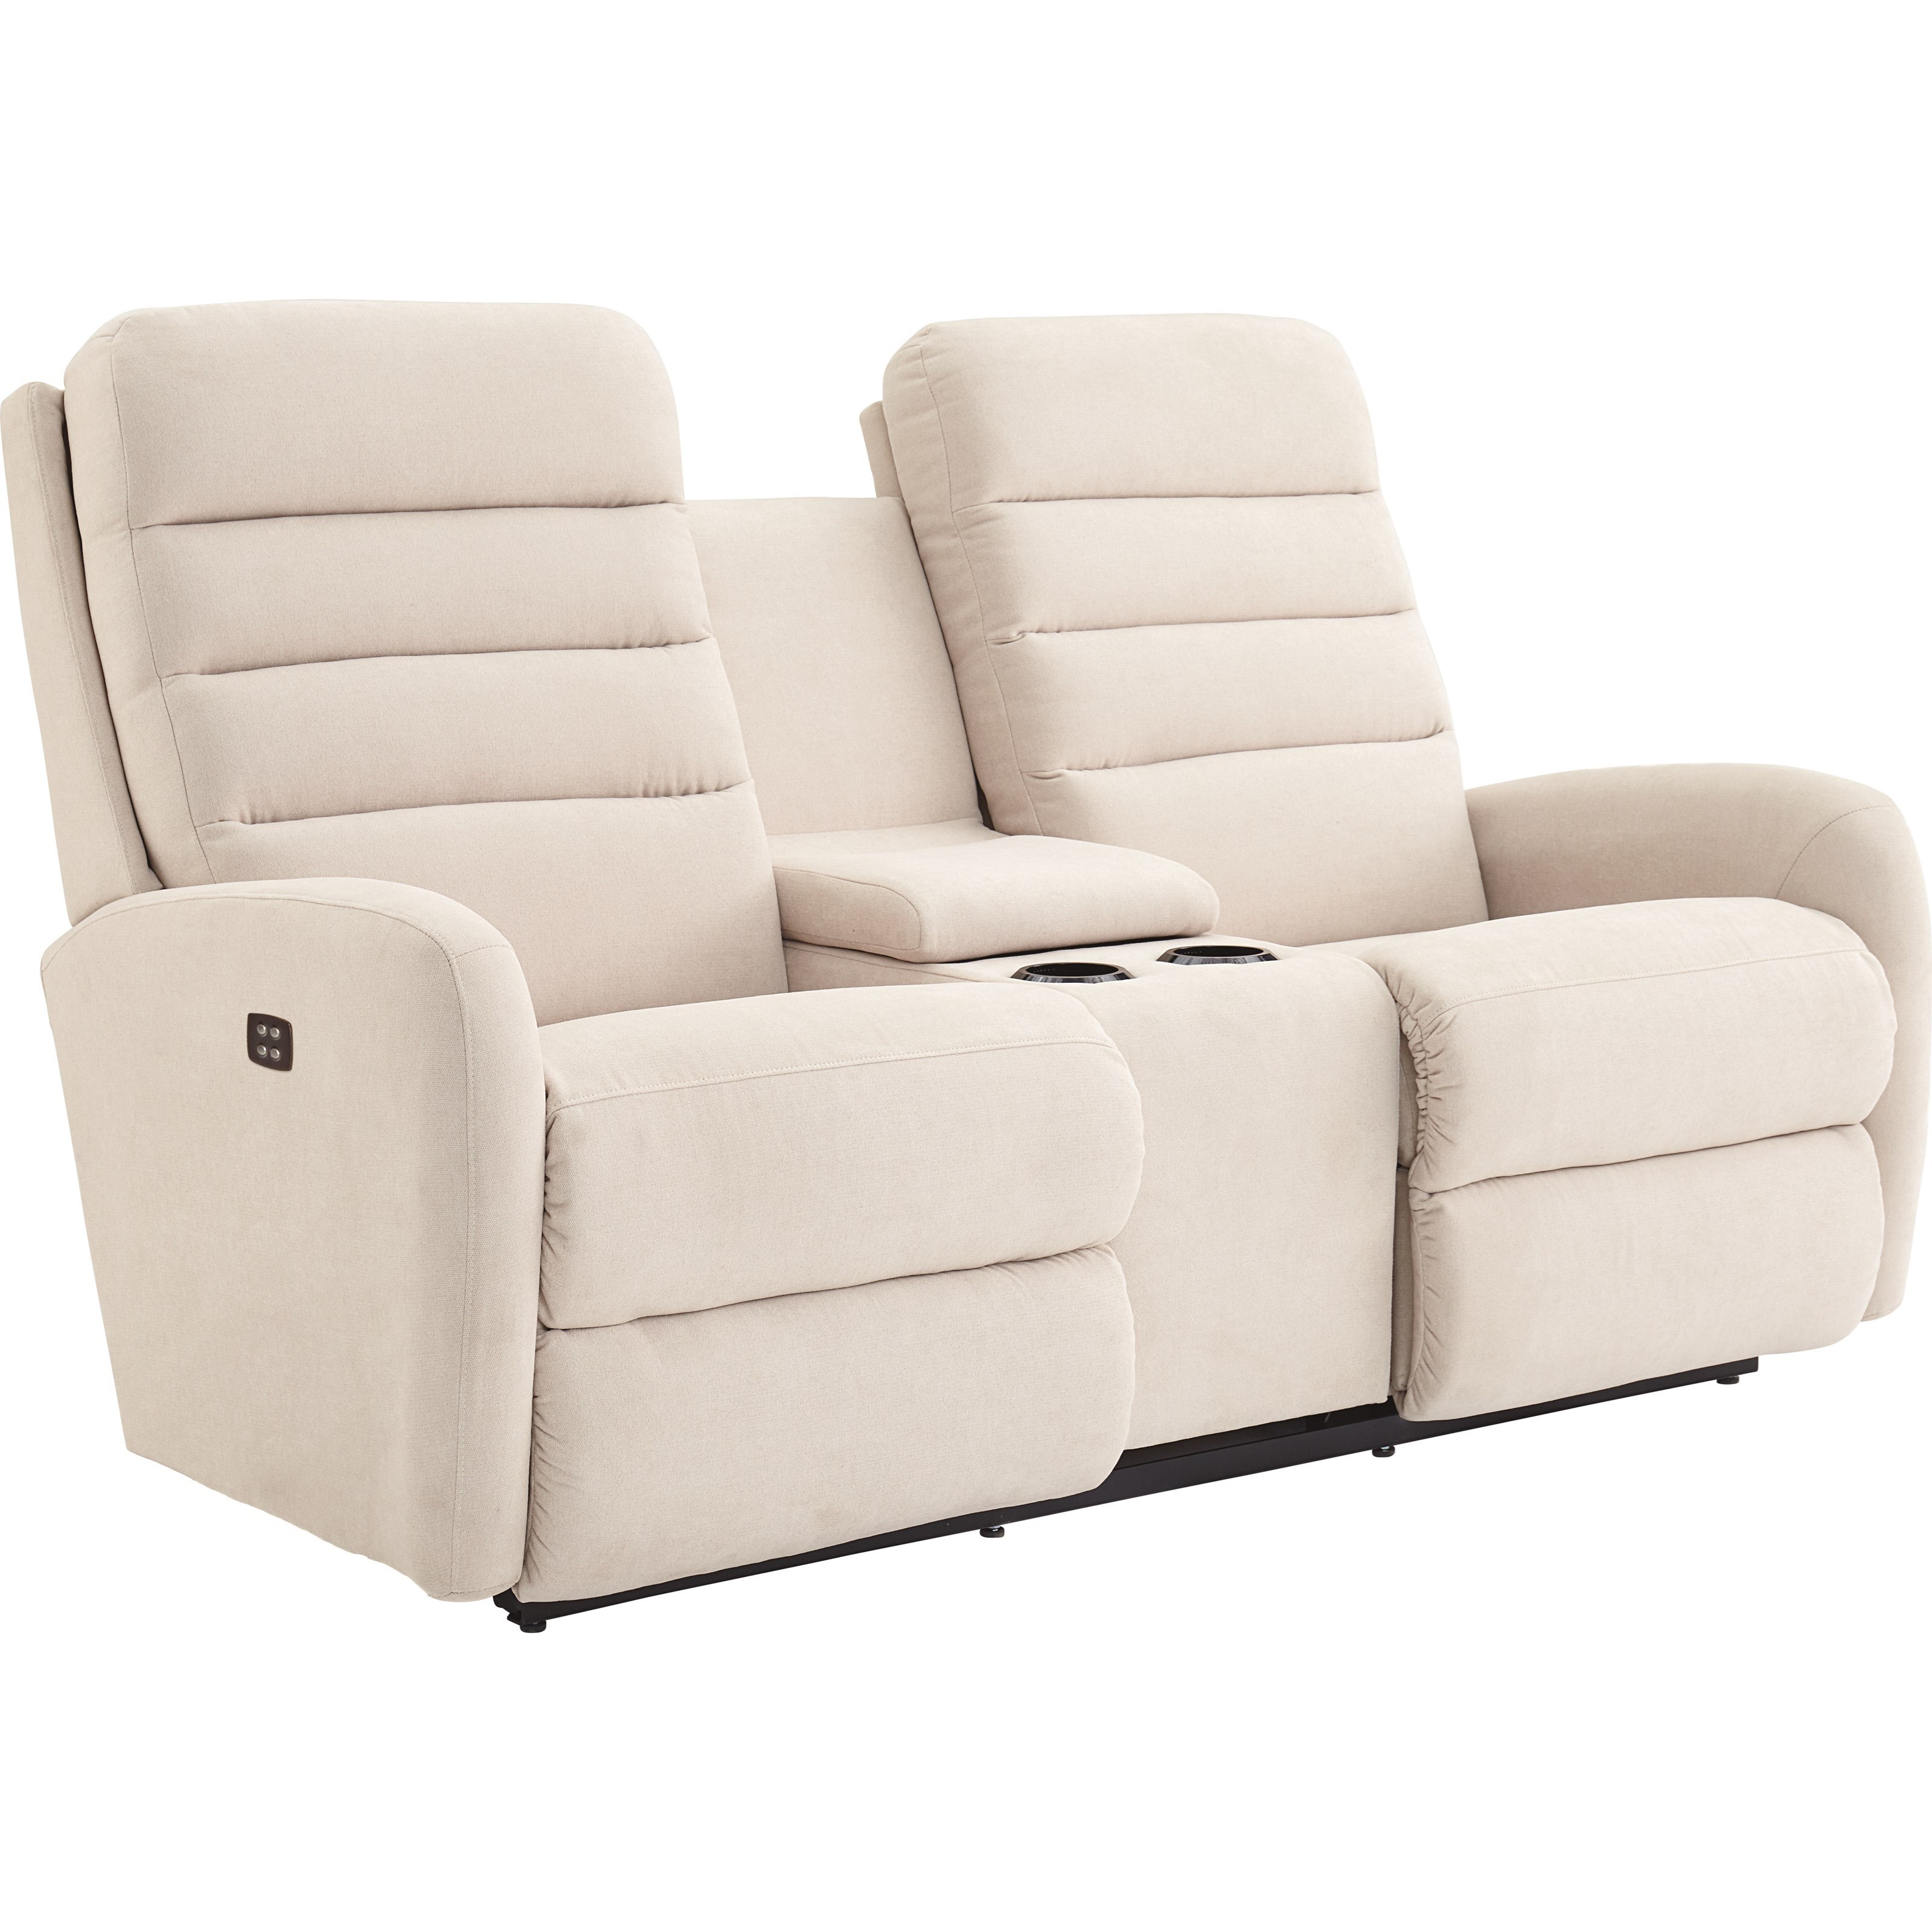 Contemporary Reclining Loveseat with Drink Storage Console